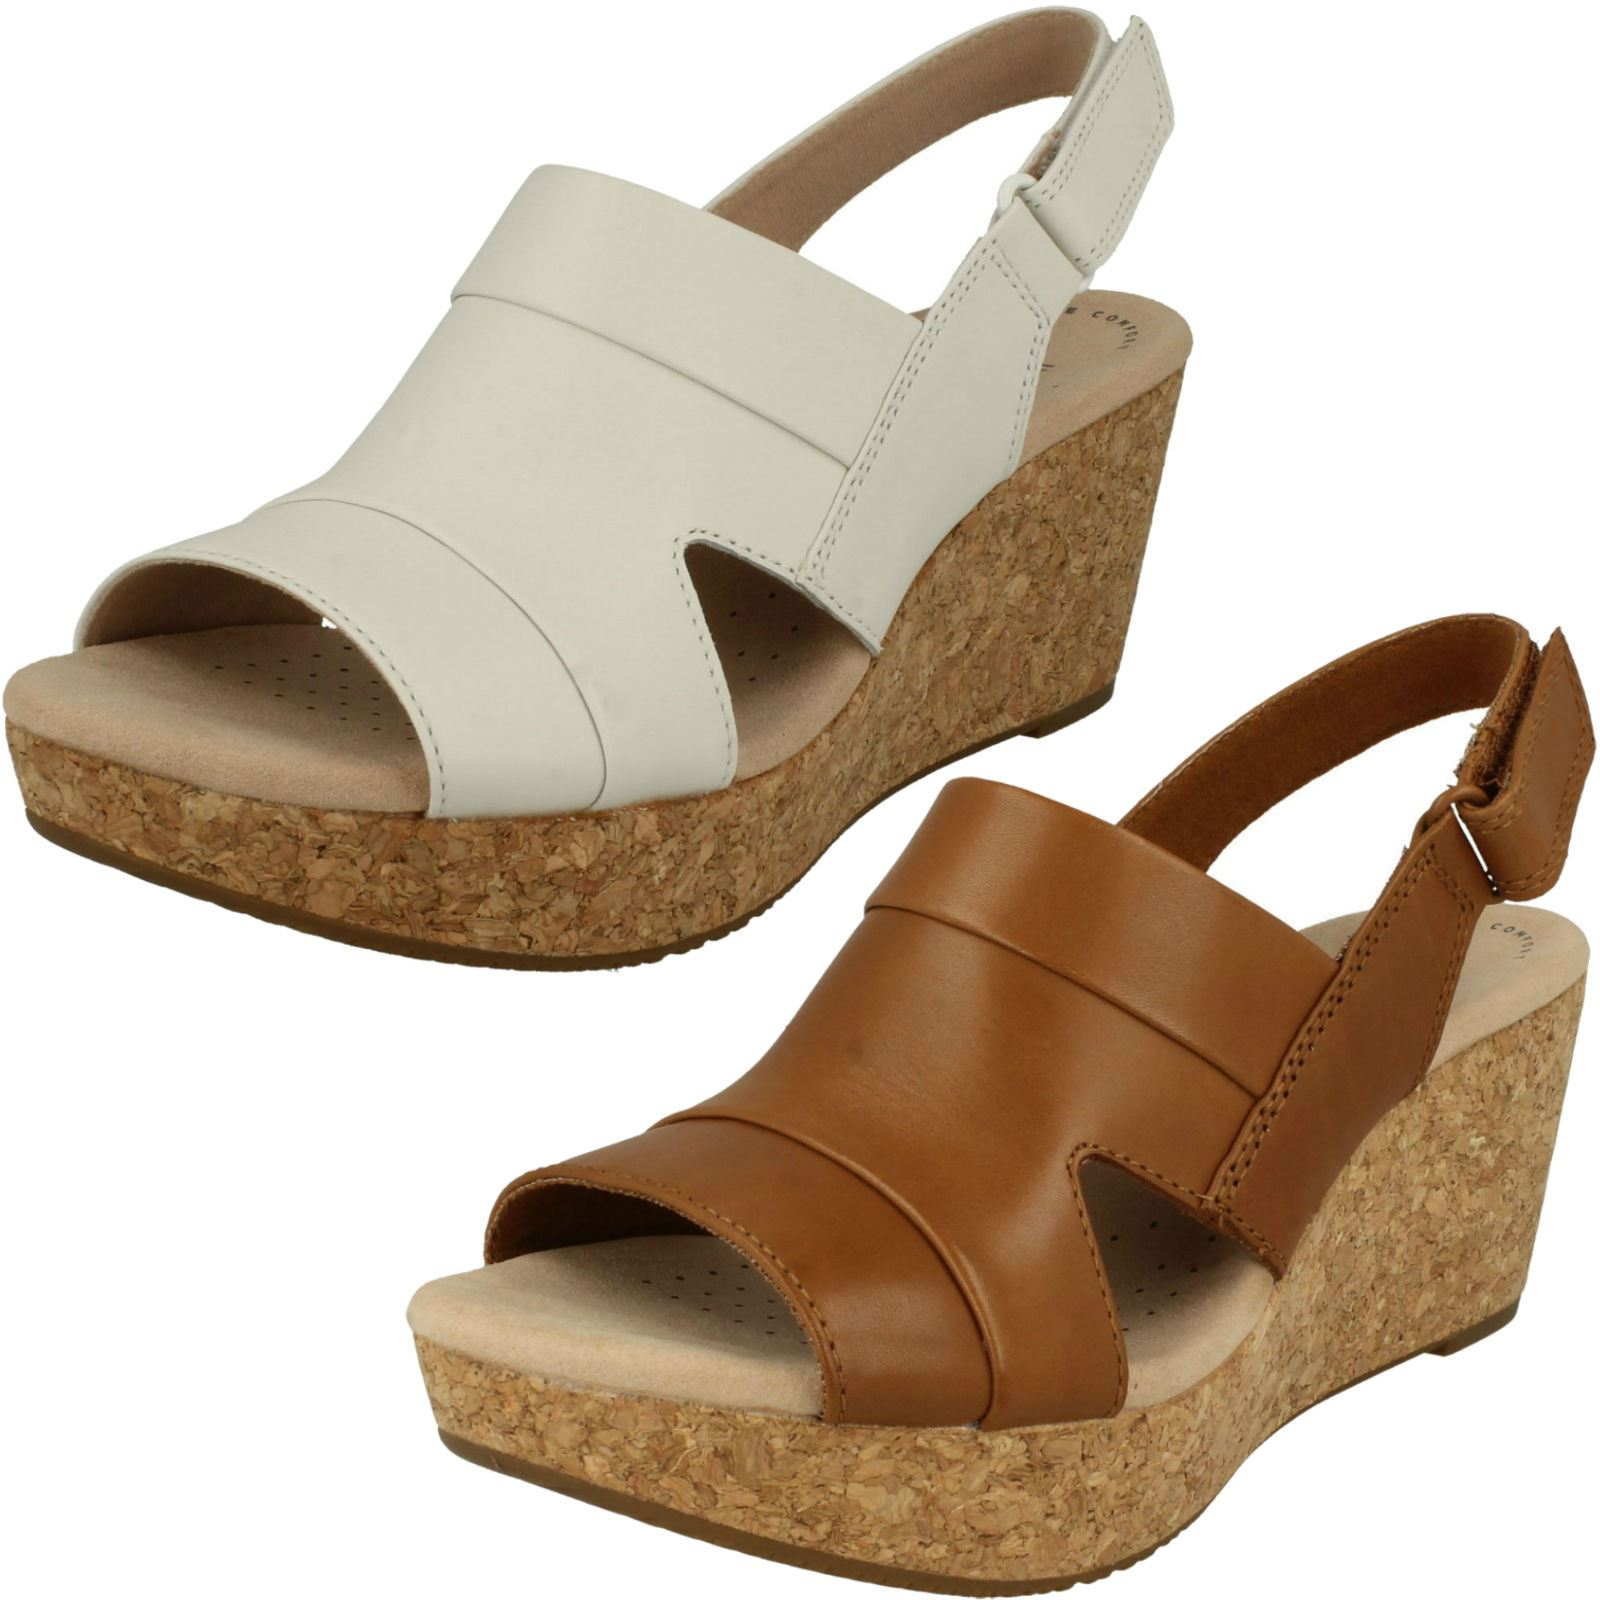 Details about Womens Clarks Wedge Heeled Sandals  Annadel Ivory  547857d7bd